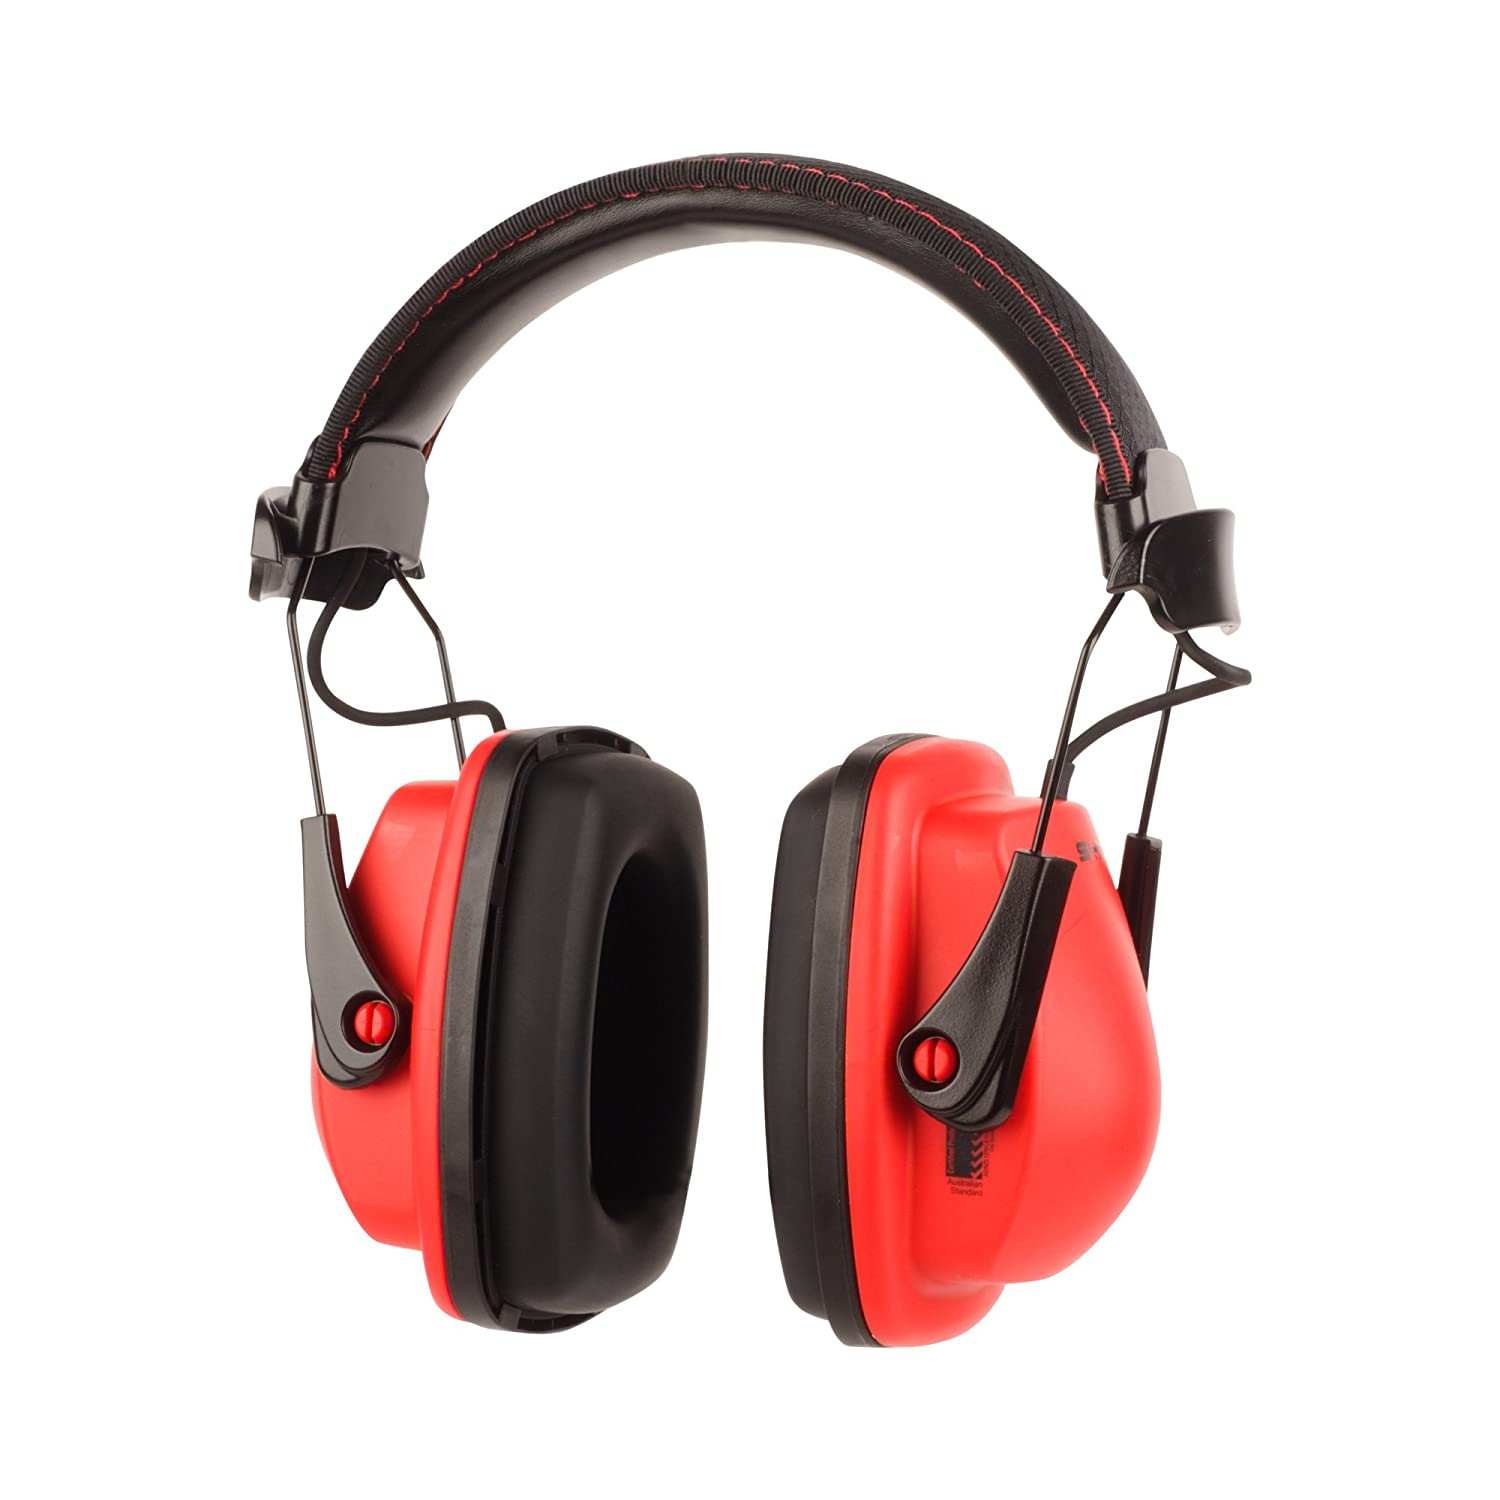 Honeywell Sync Stereo Earmuff with MP3 Connection (RWS-53011)